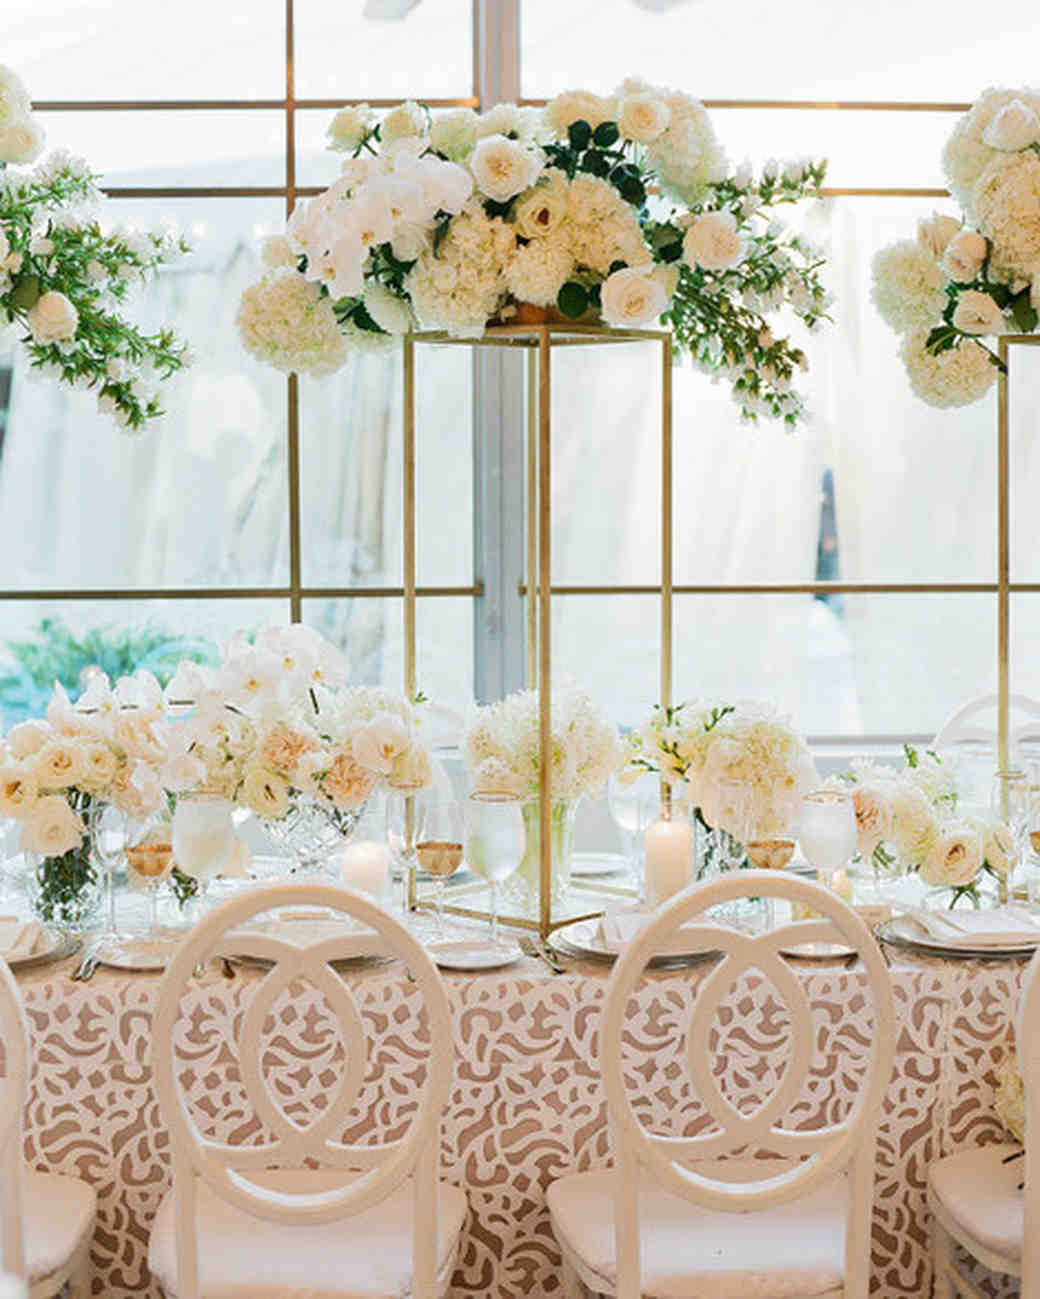 13 new wedding trends to watch for in 2018 according to for Decoration 2018